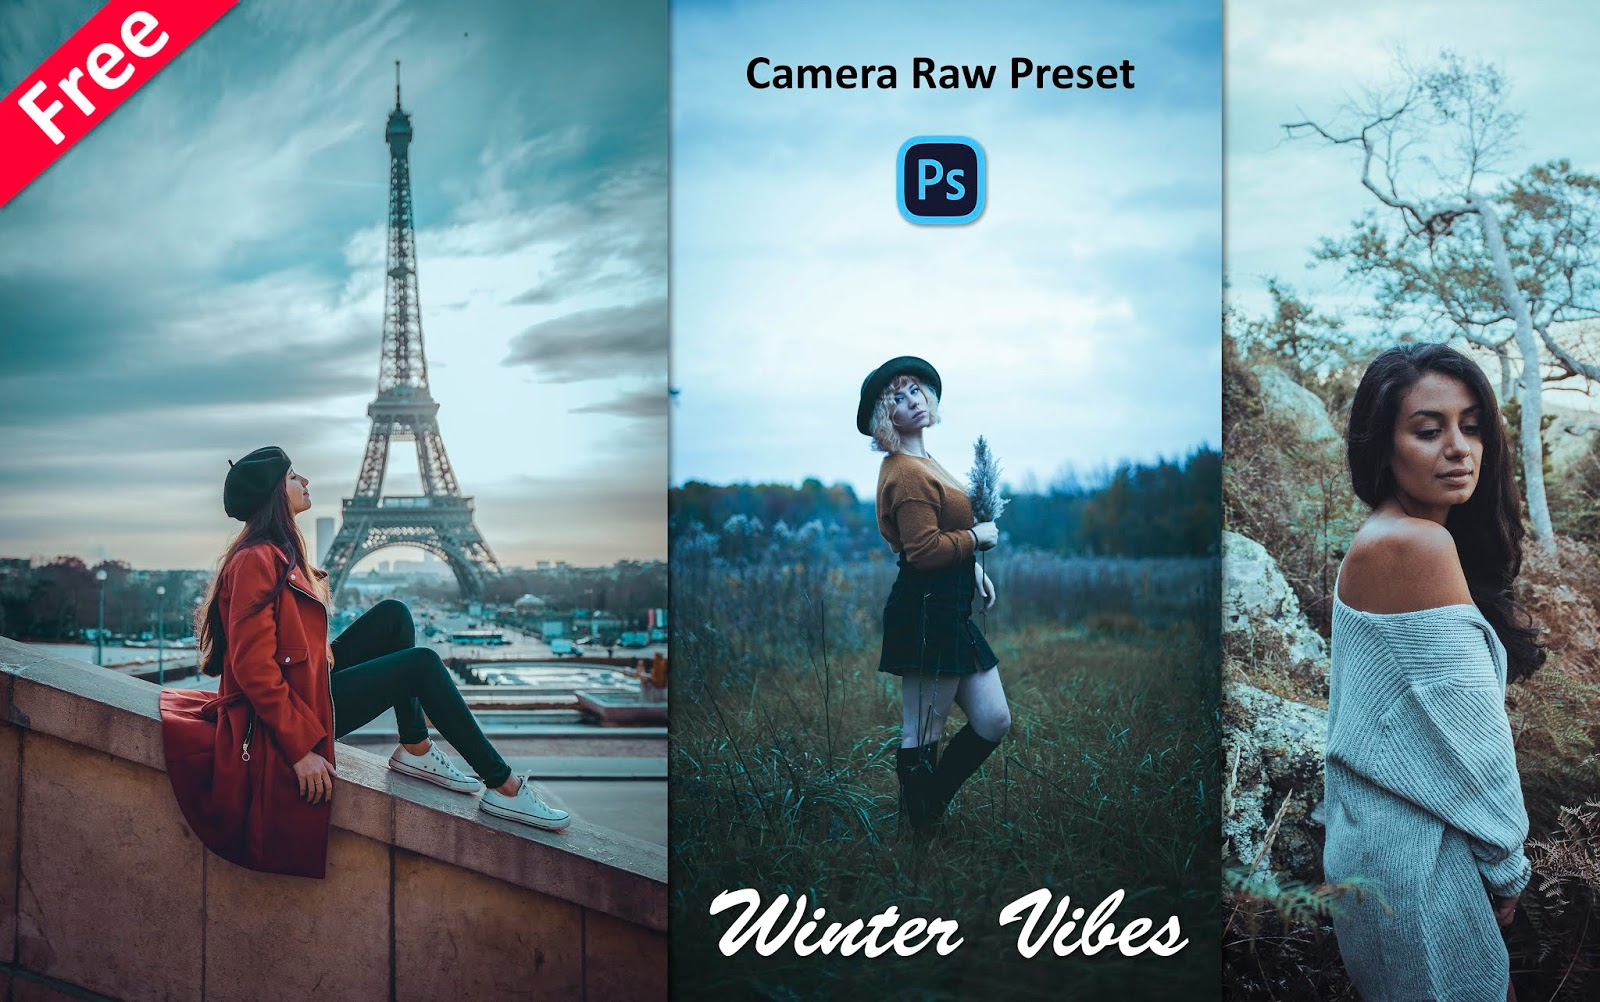 Download Winter Vibes Camera Raw Preset for Free | How to Edit Cold Winter Effect in Photoshop